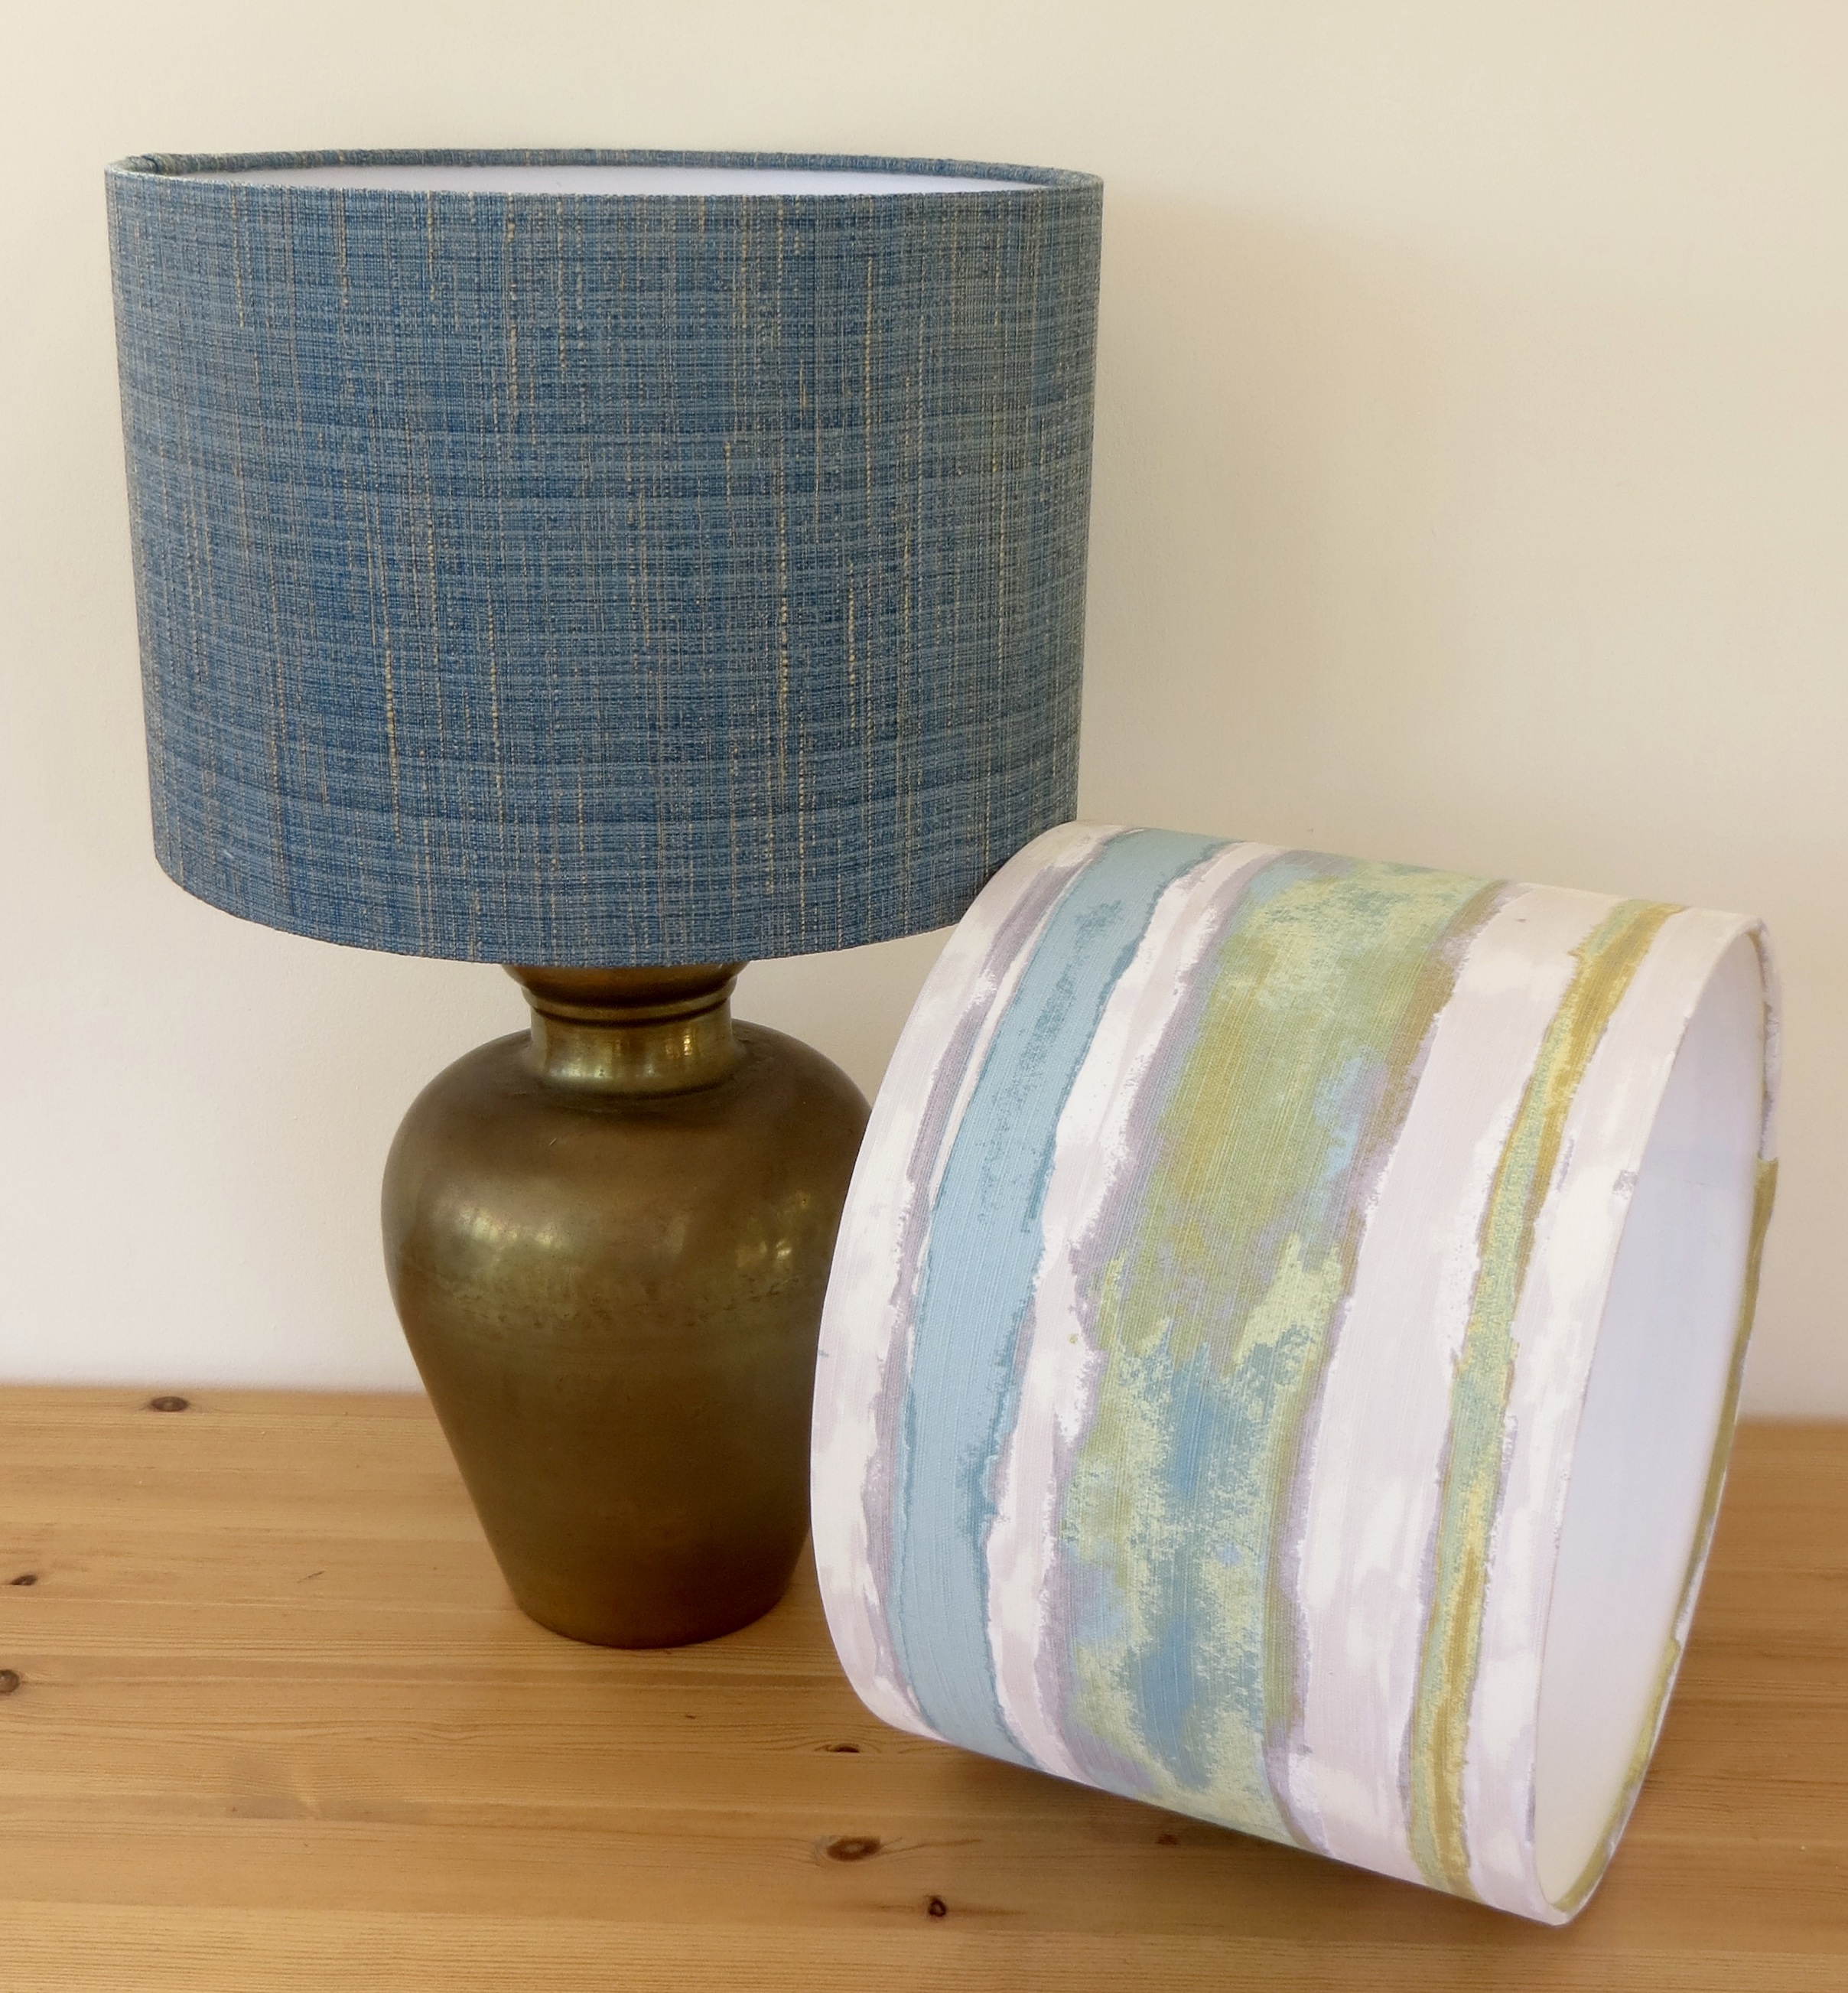 Co-ordinating table lampshades